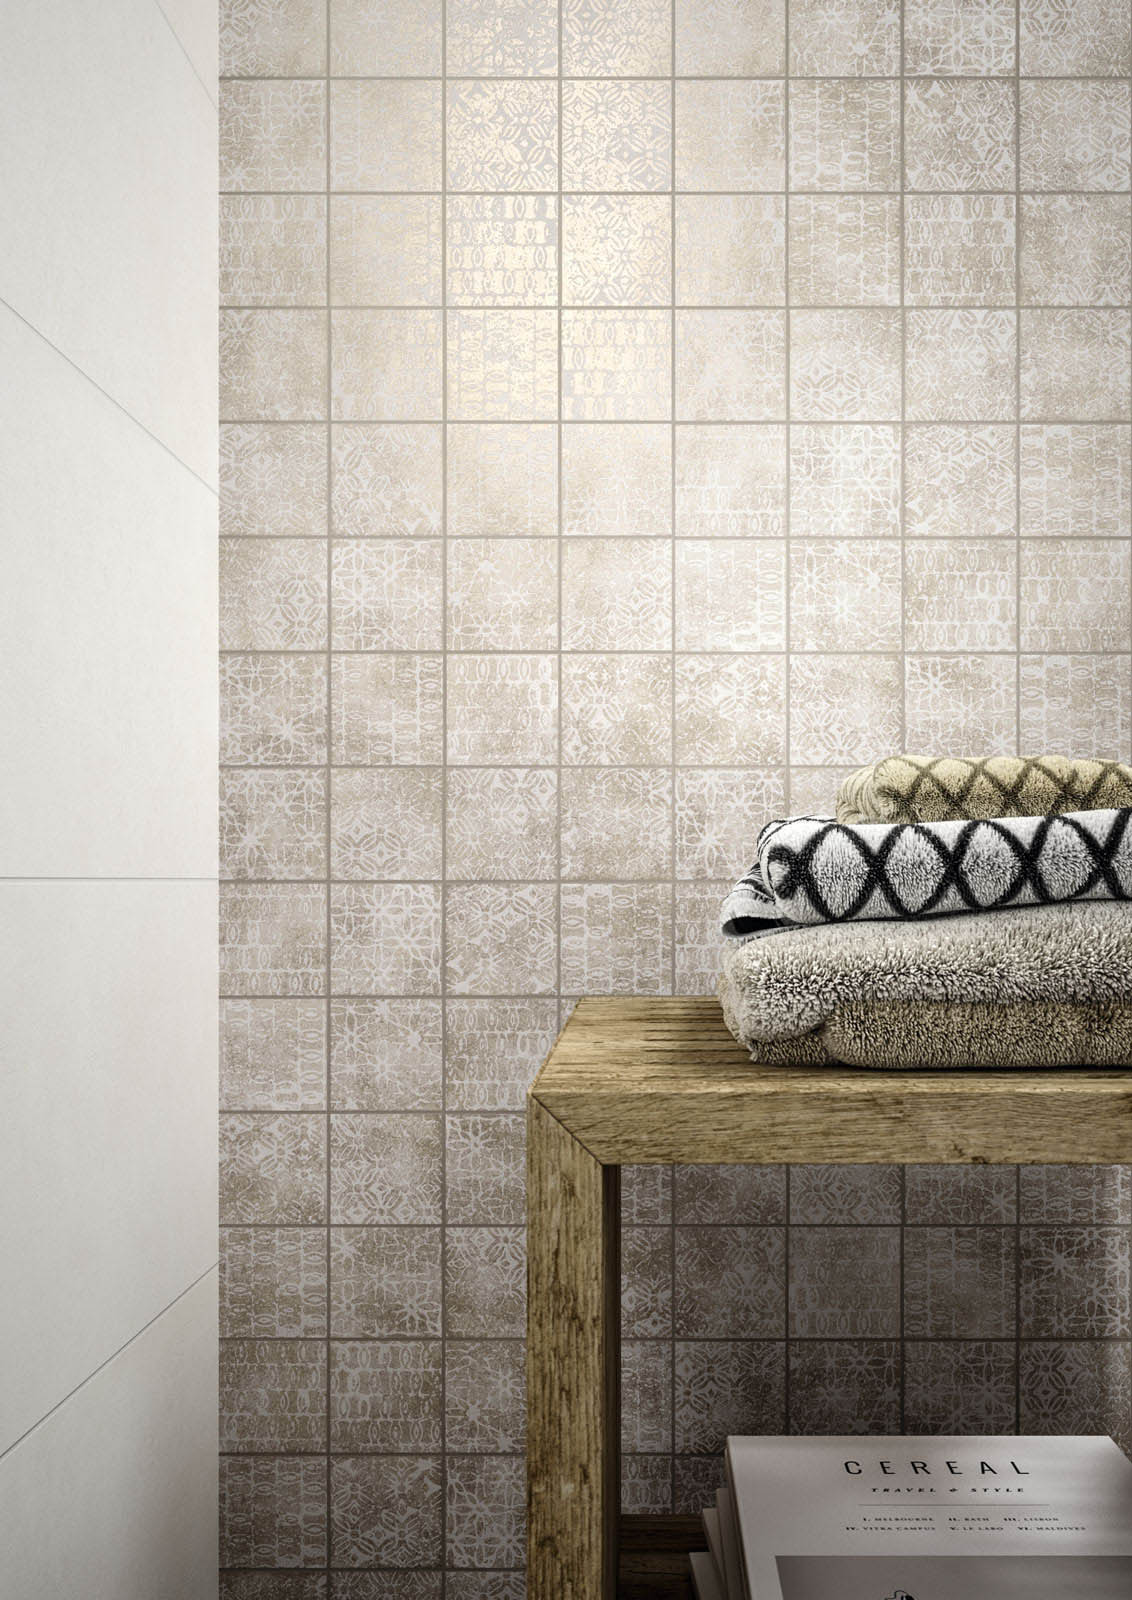 Chalk concrete look wall tiles marazzi chalk ceramic tiles marazzi7637 dailygadgetfo Images